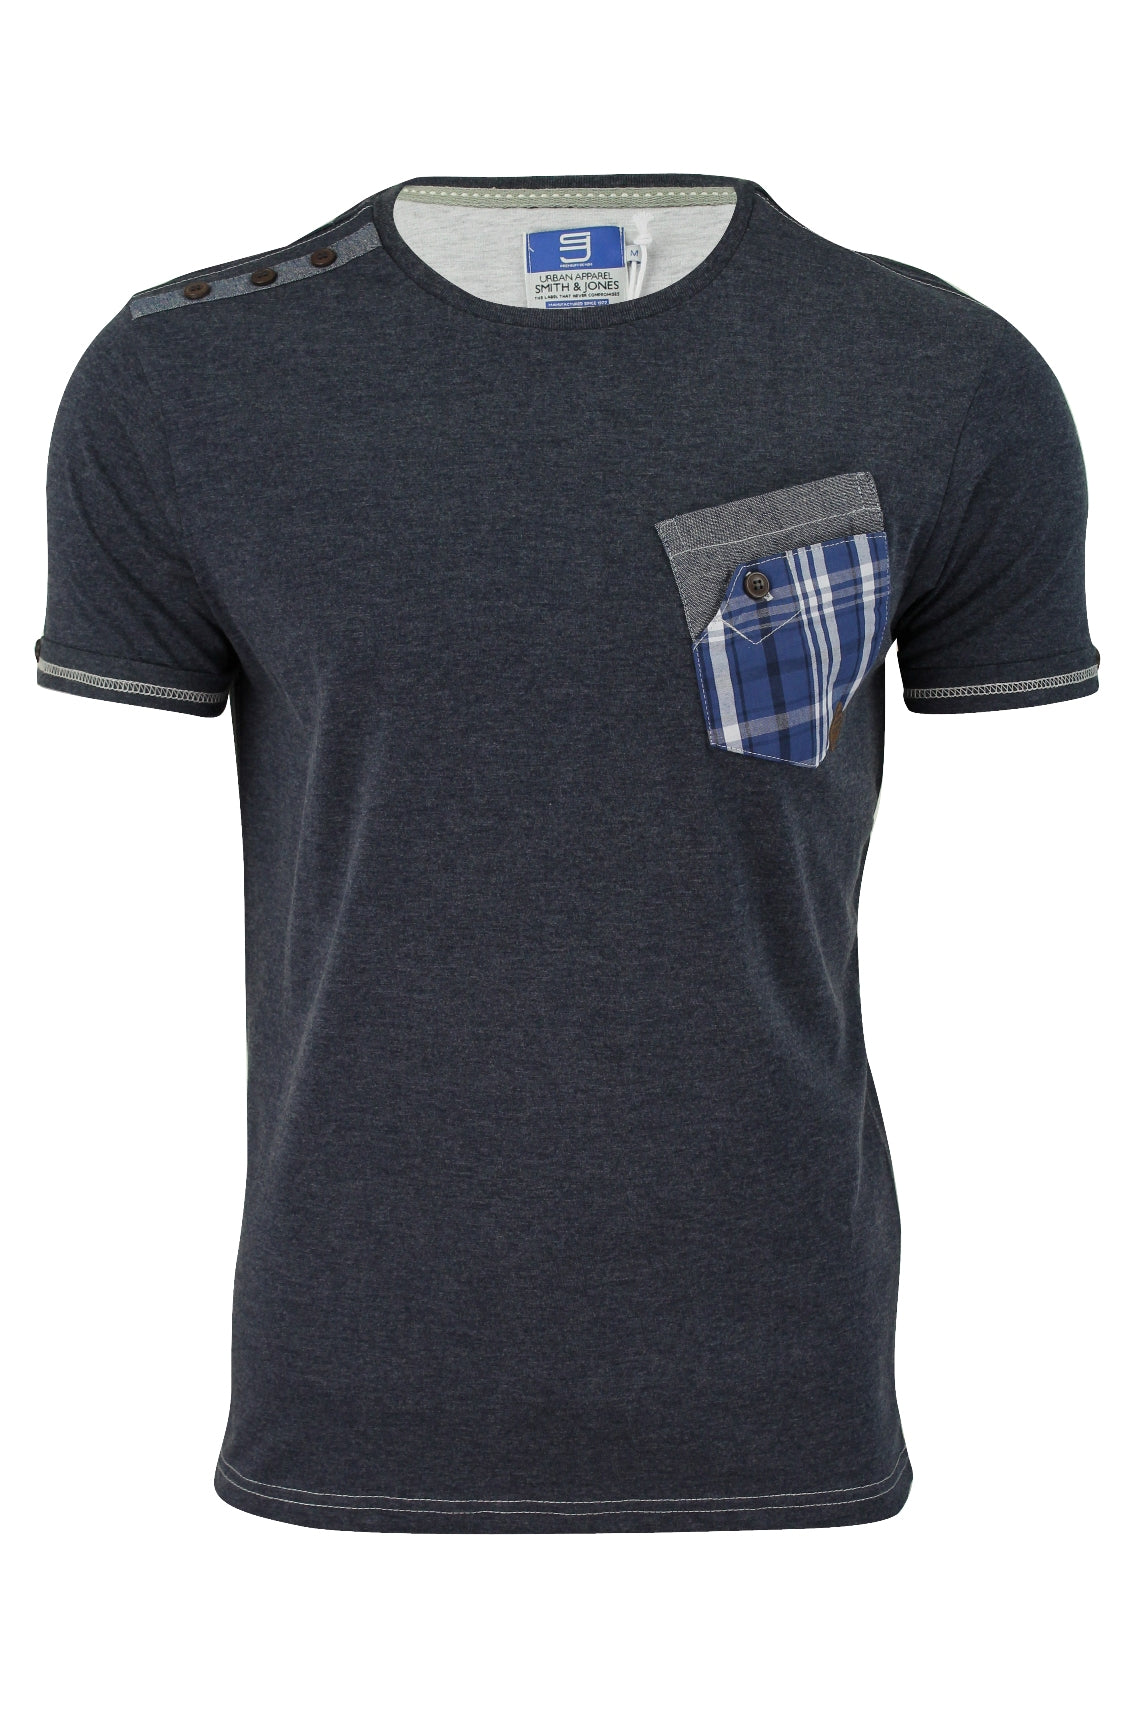 Mens T-Shirt by Smith & Jones 'Wandsworth' Short Sleeved-2